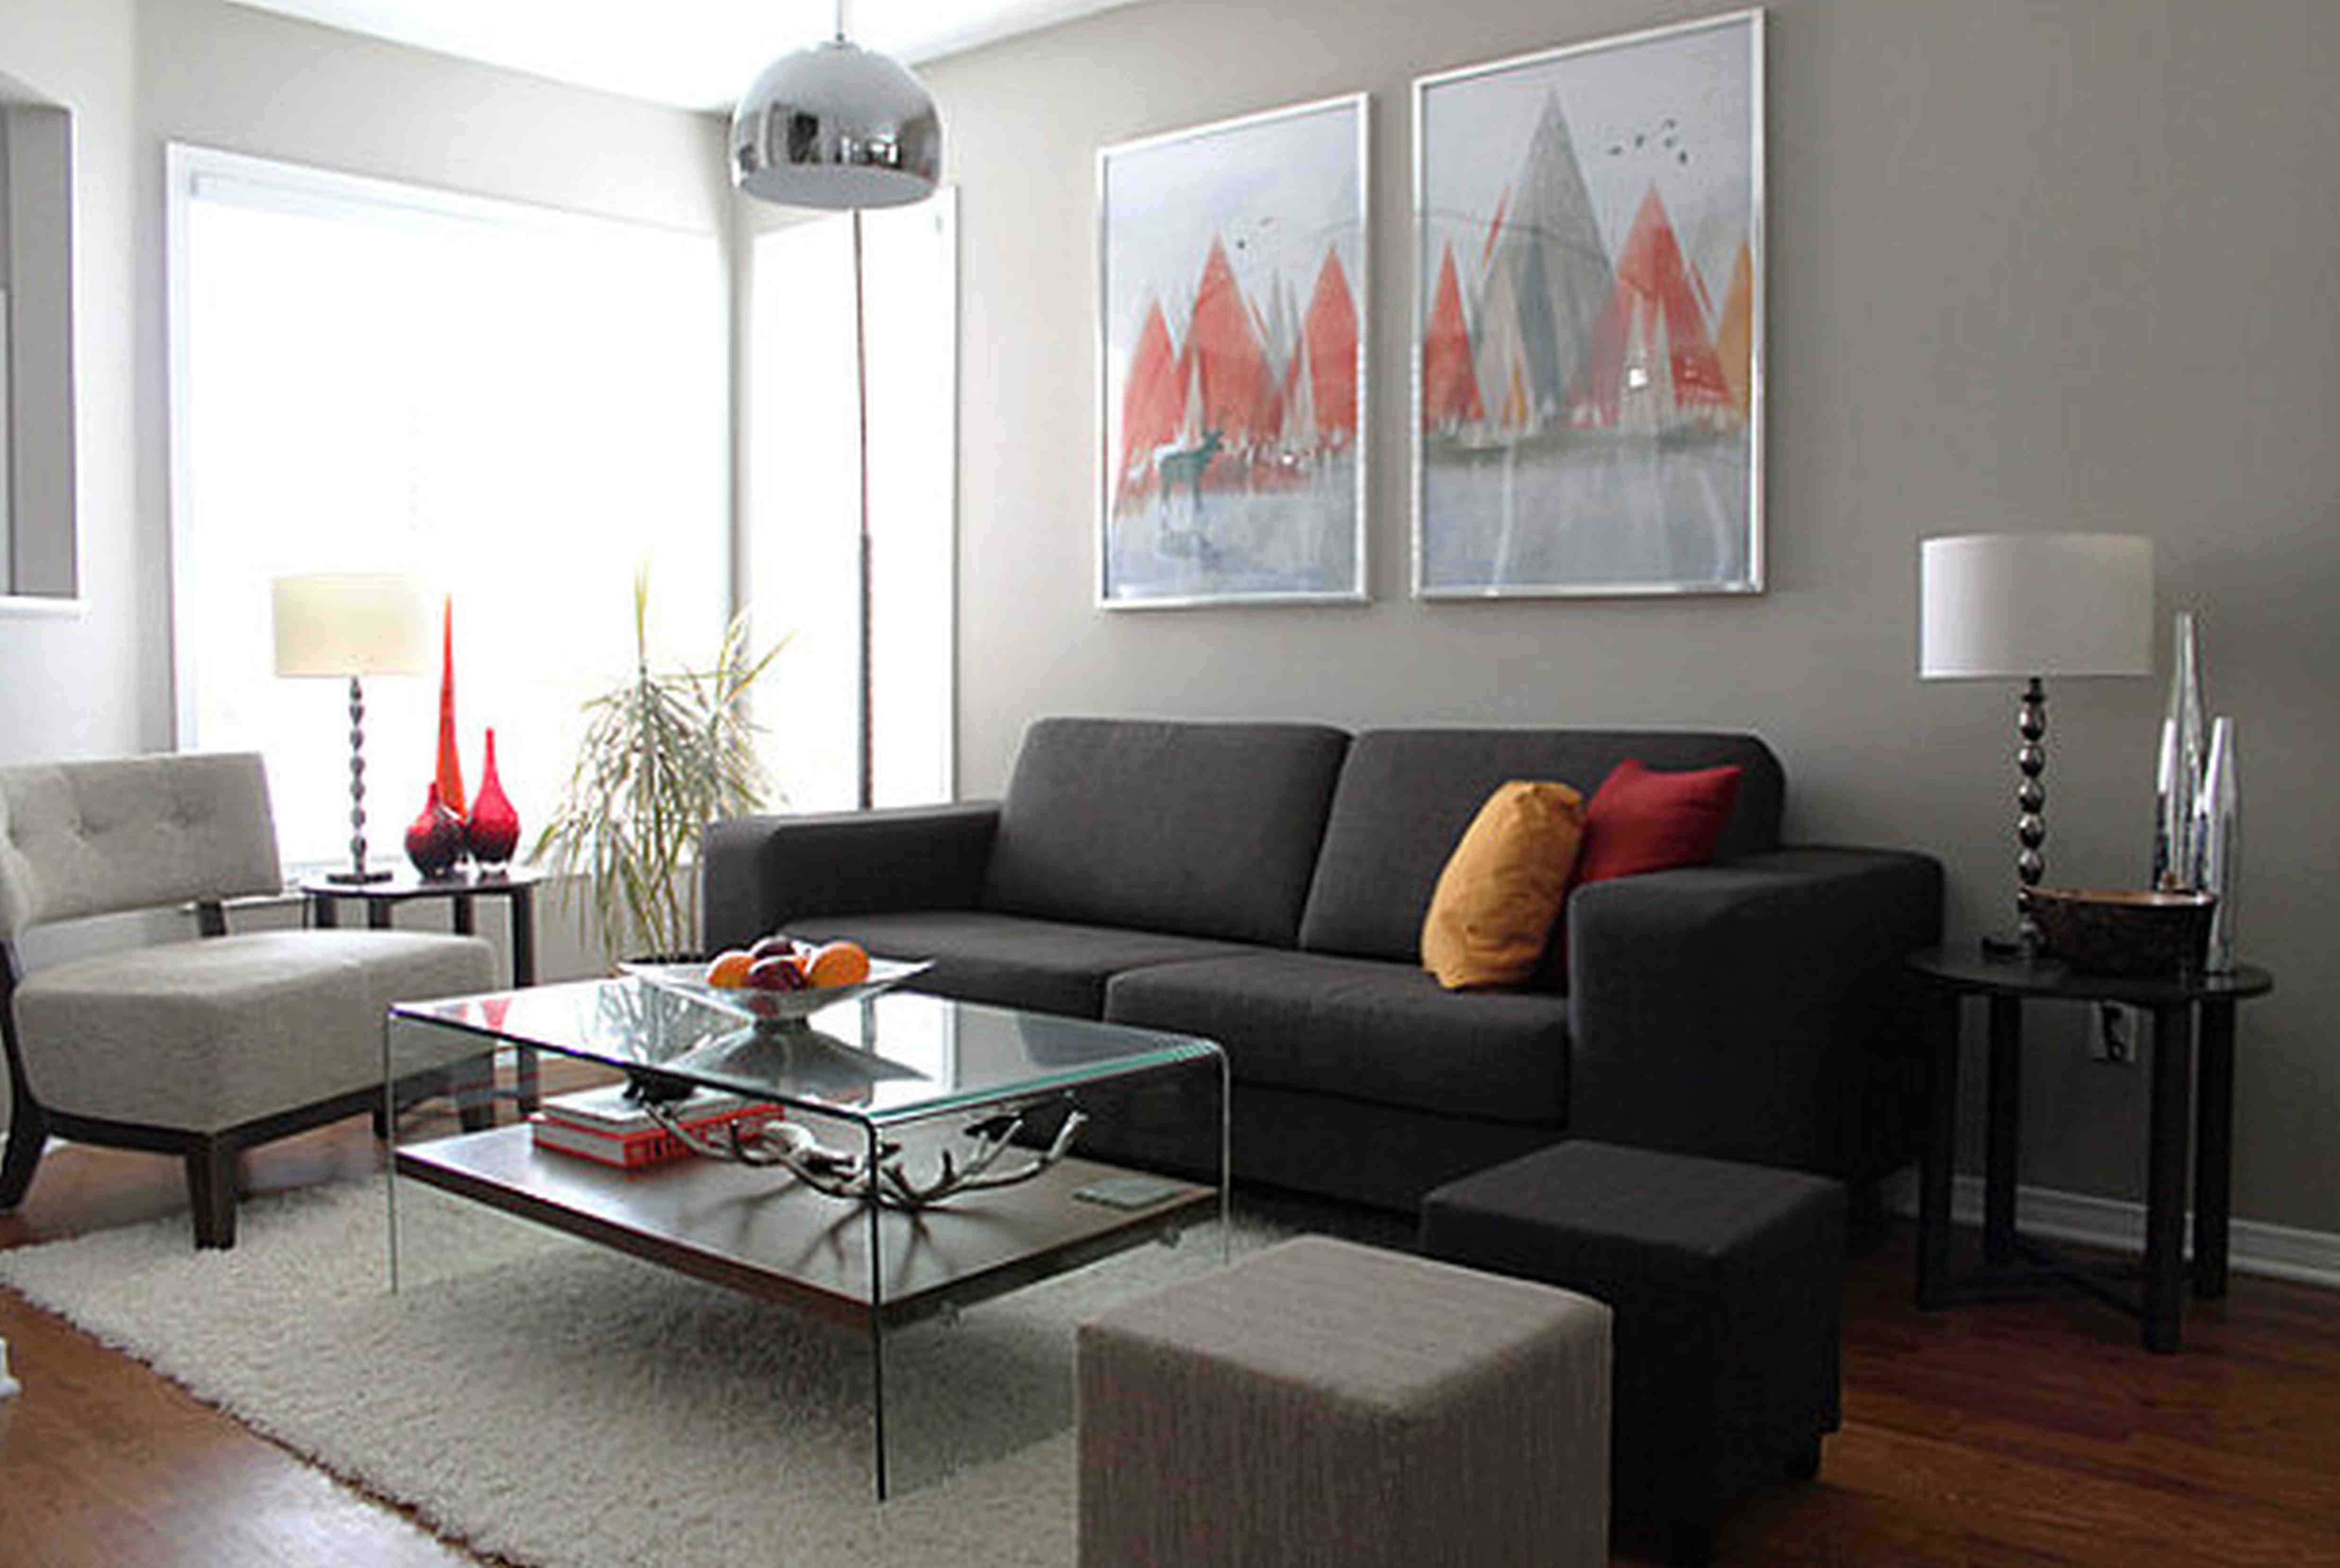 Clear Glass Top Coffee Table for Contemporary Living Room Furniture Ideas with Dark Sofa on Oak Flooring